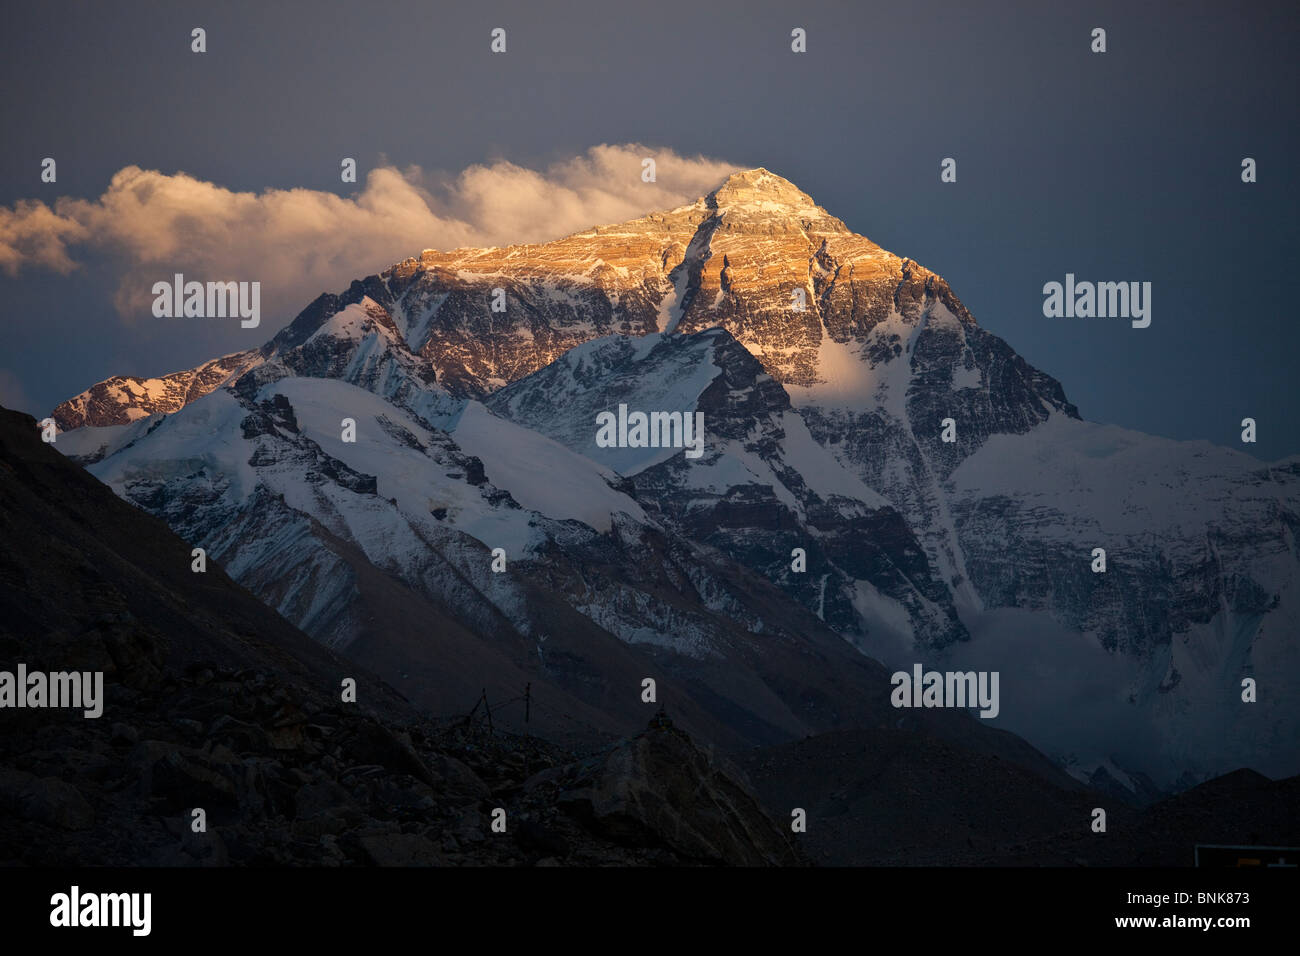 Mount Everest from the Tibetan side - Stock Image